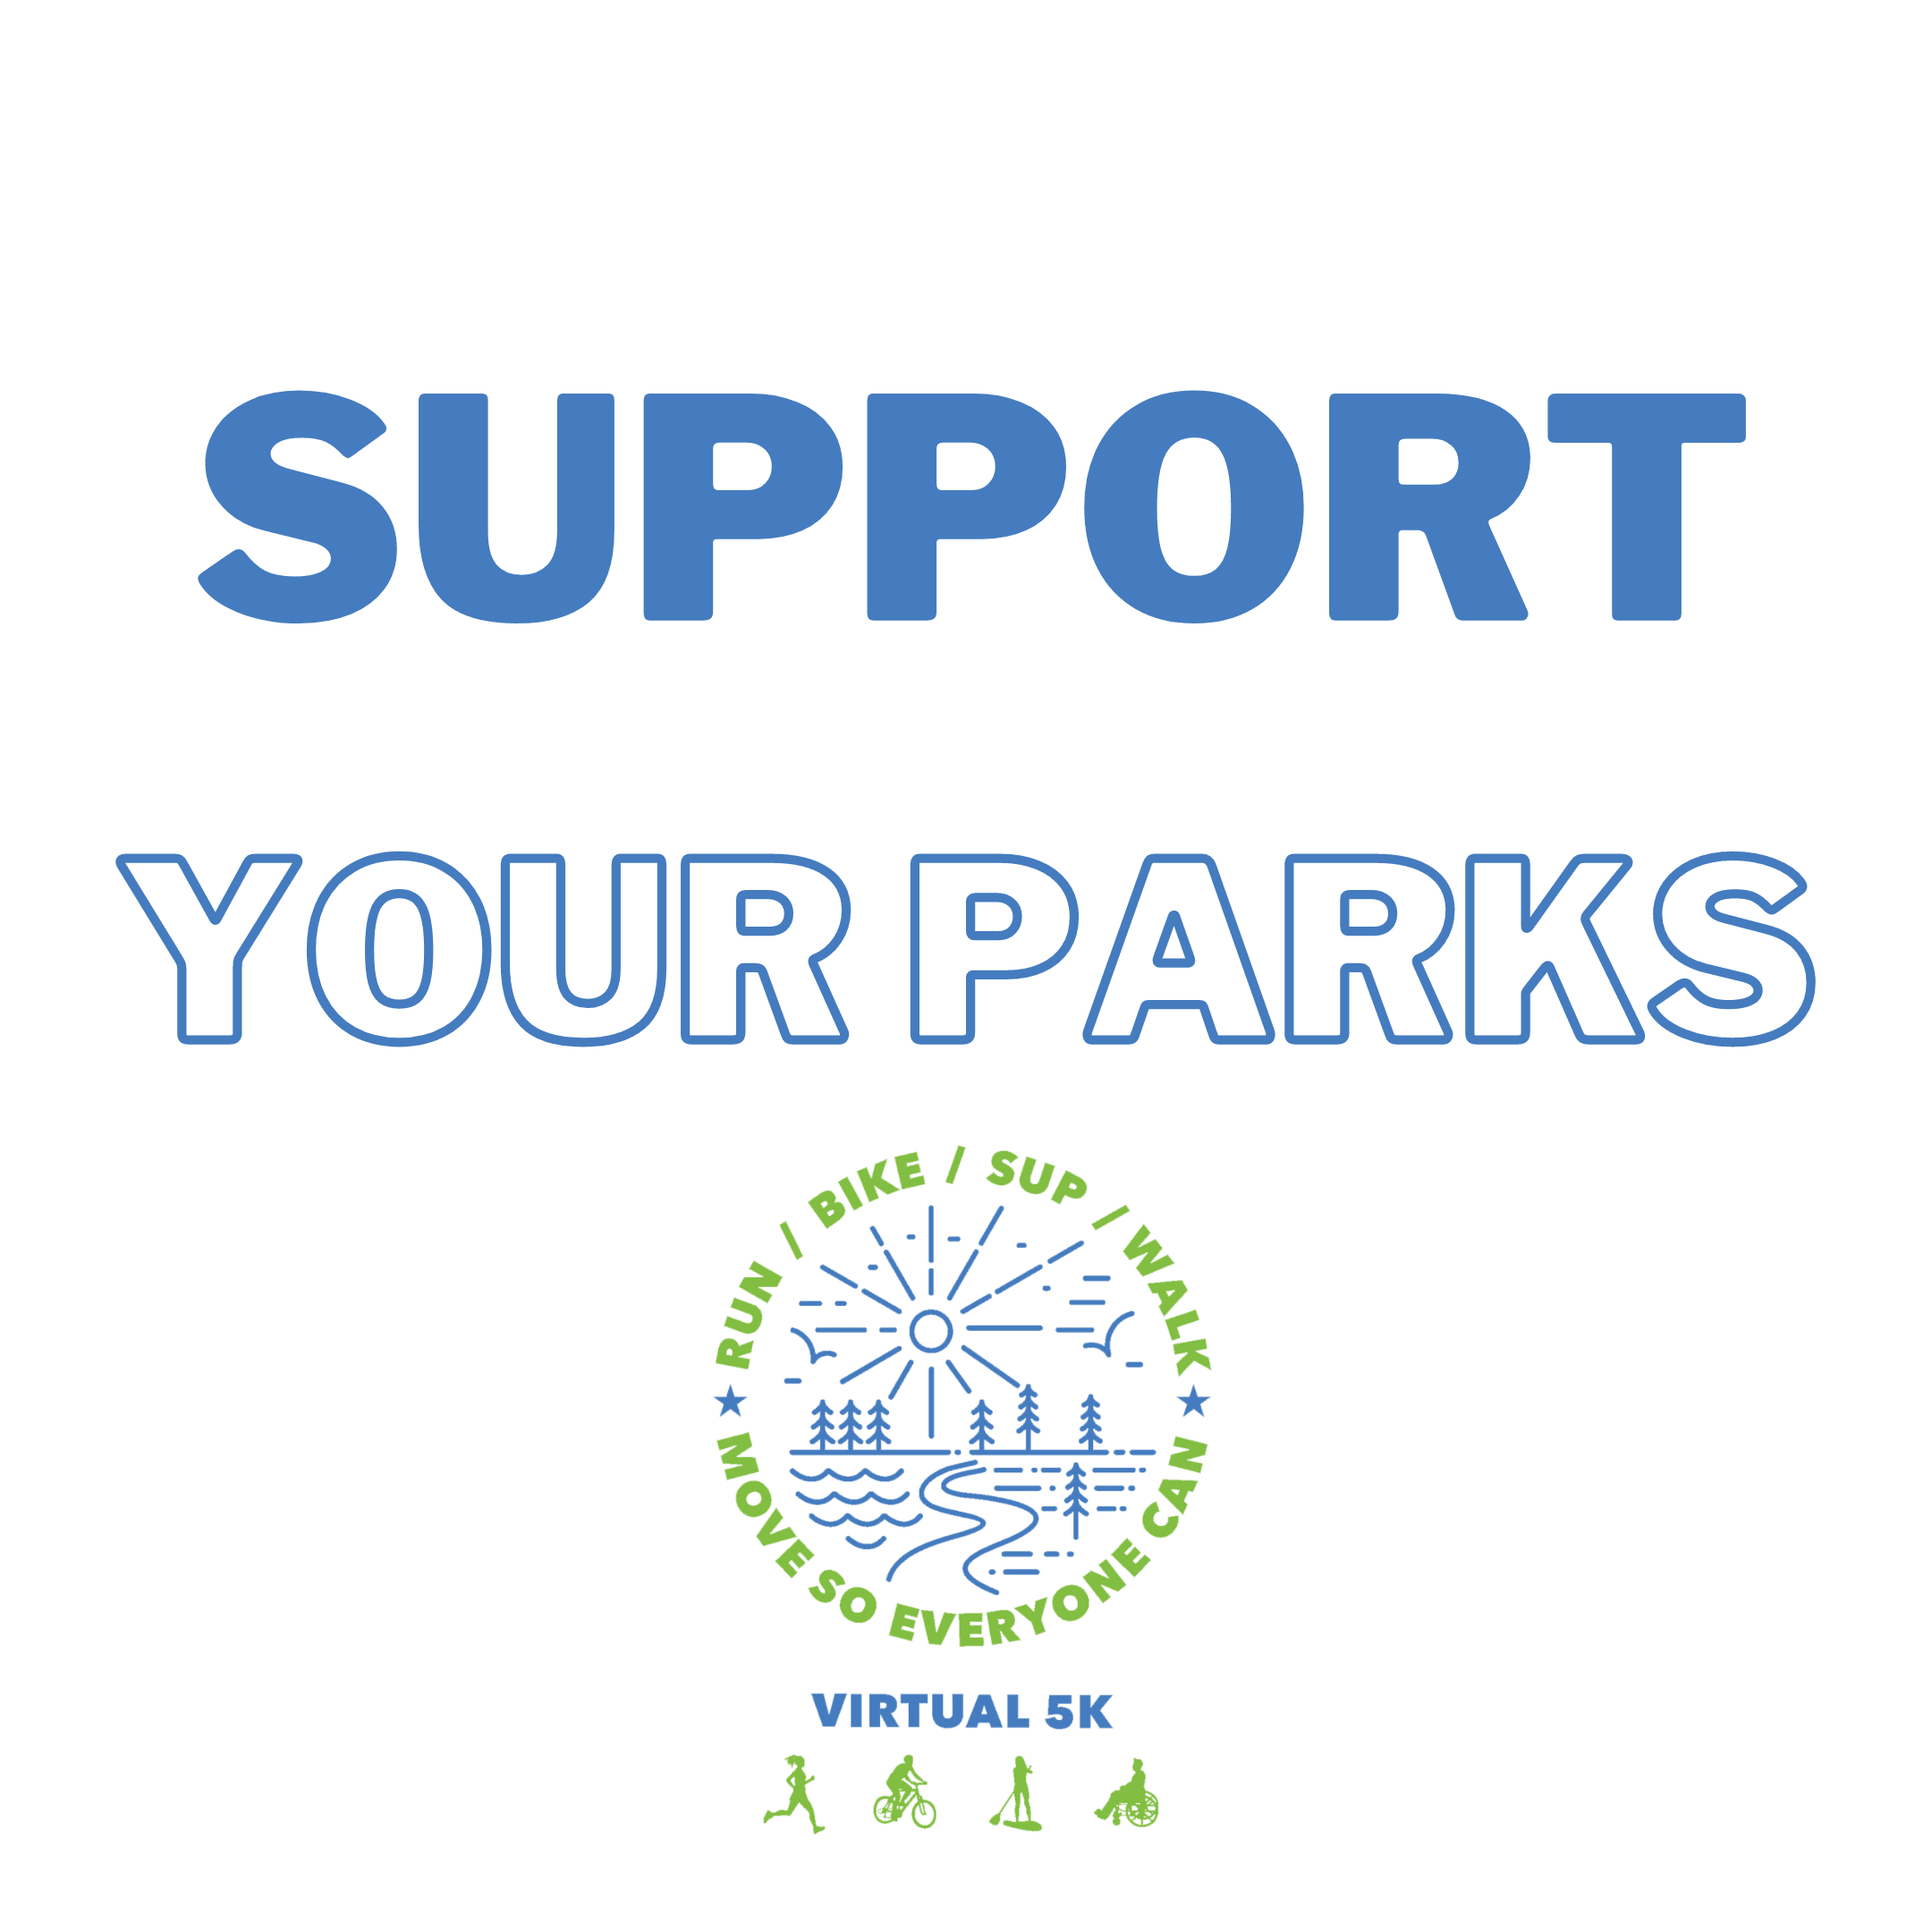 2020 mParks Virtual 5K Information